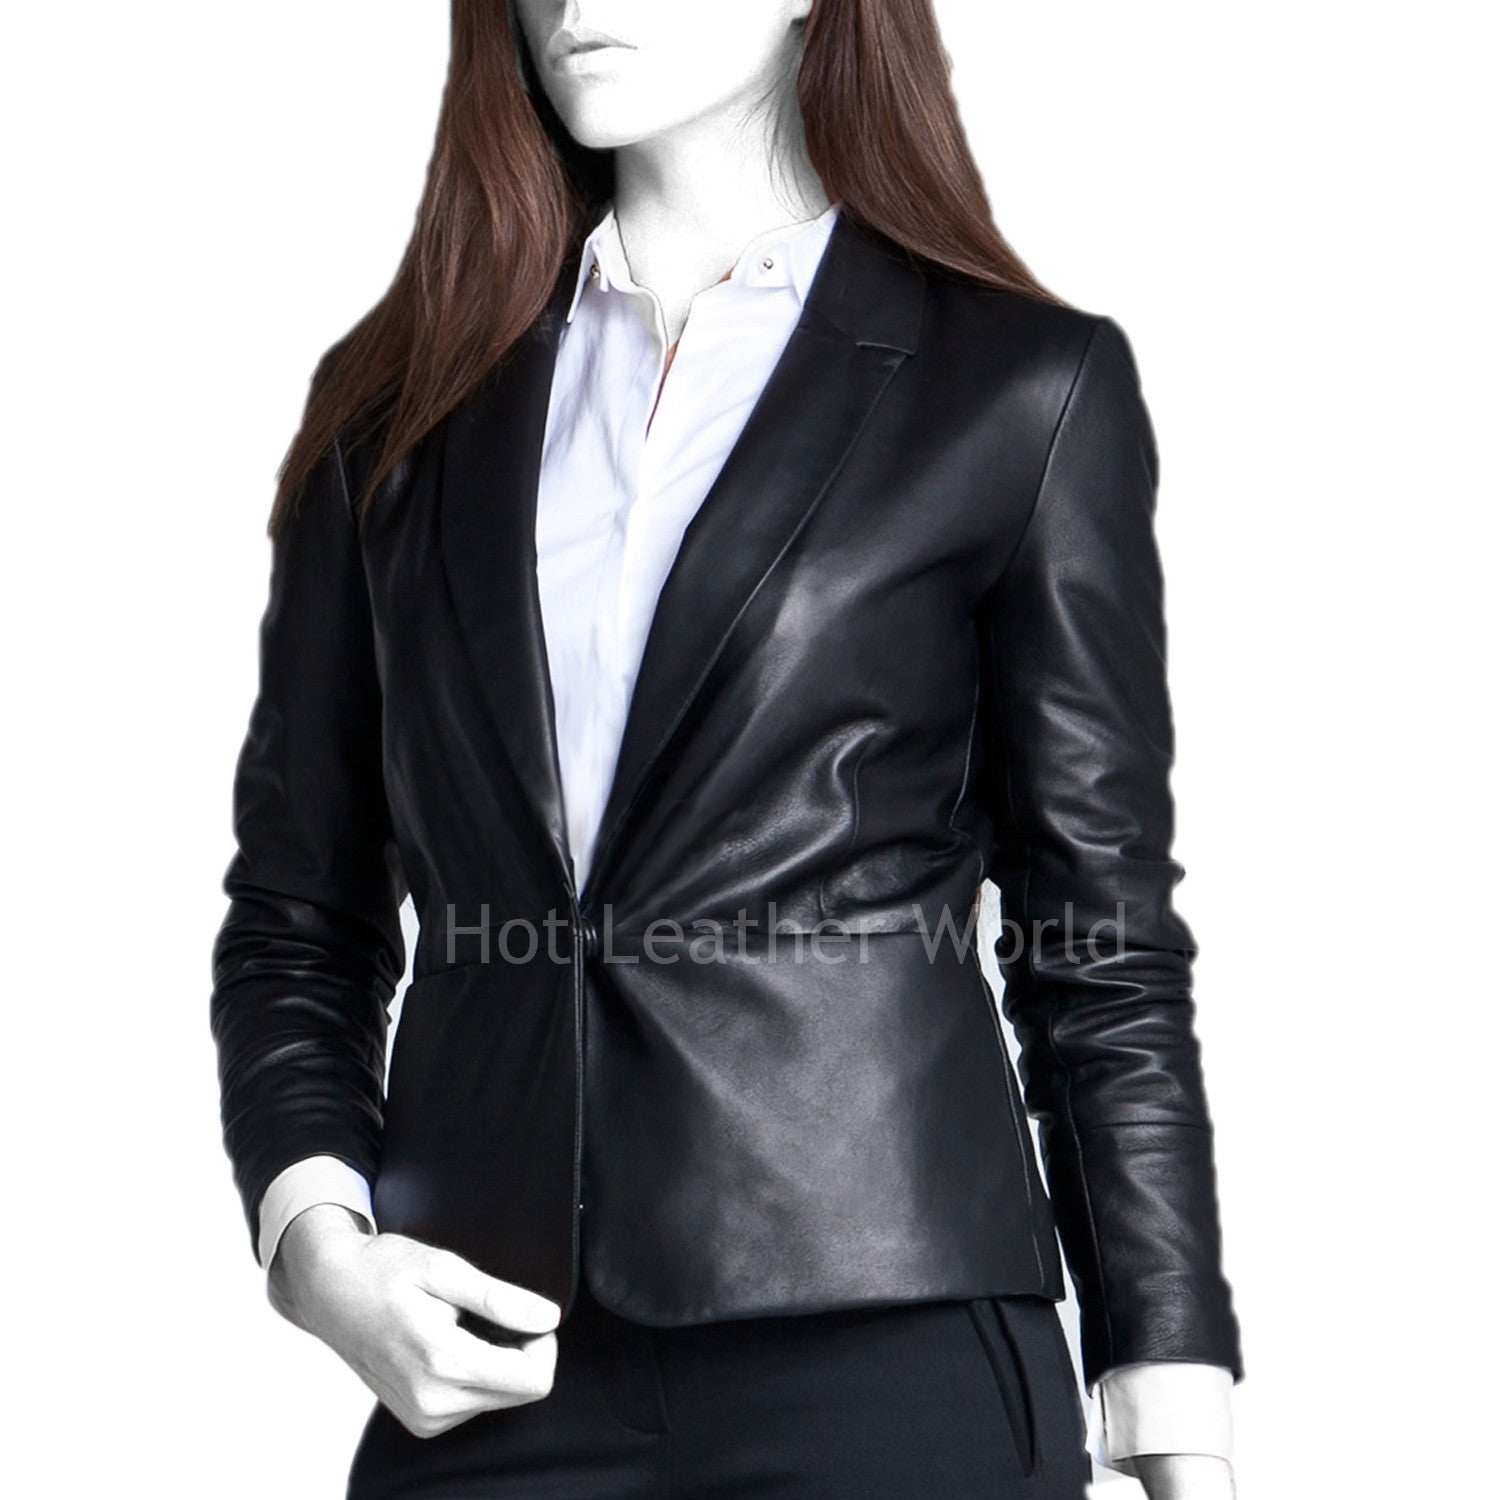 Classic Style Leather Blazer For Women -  HOTLEATHERWORLD